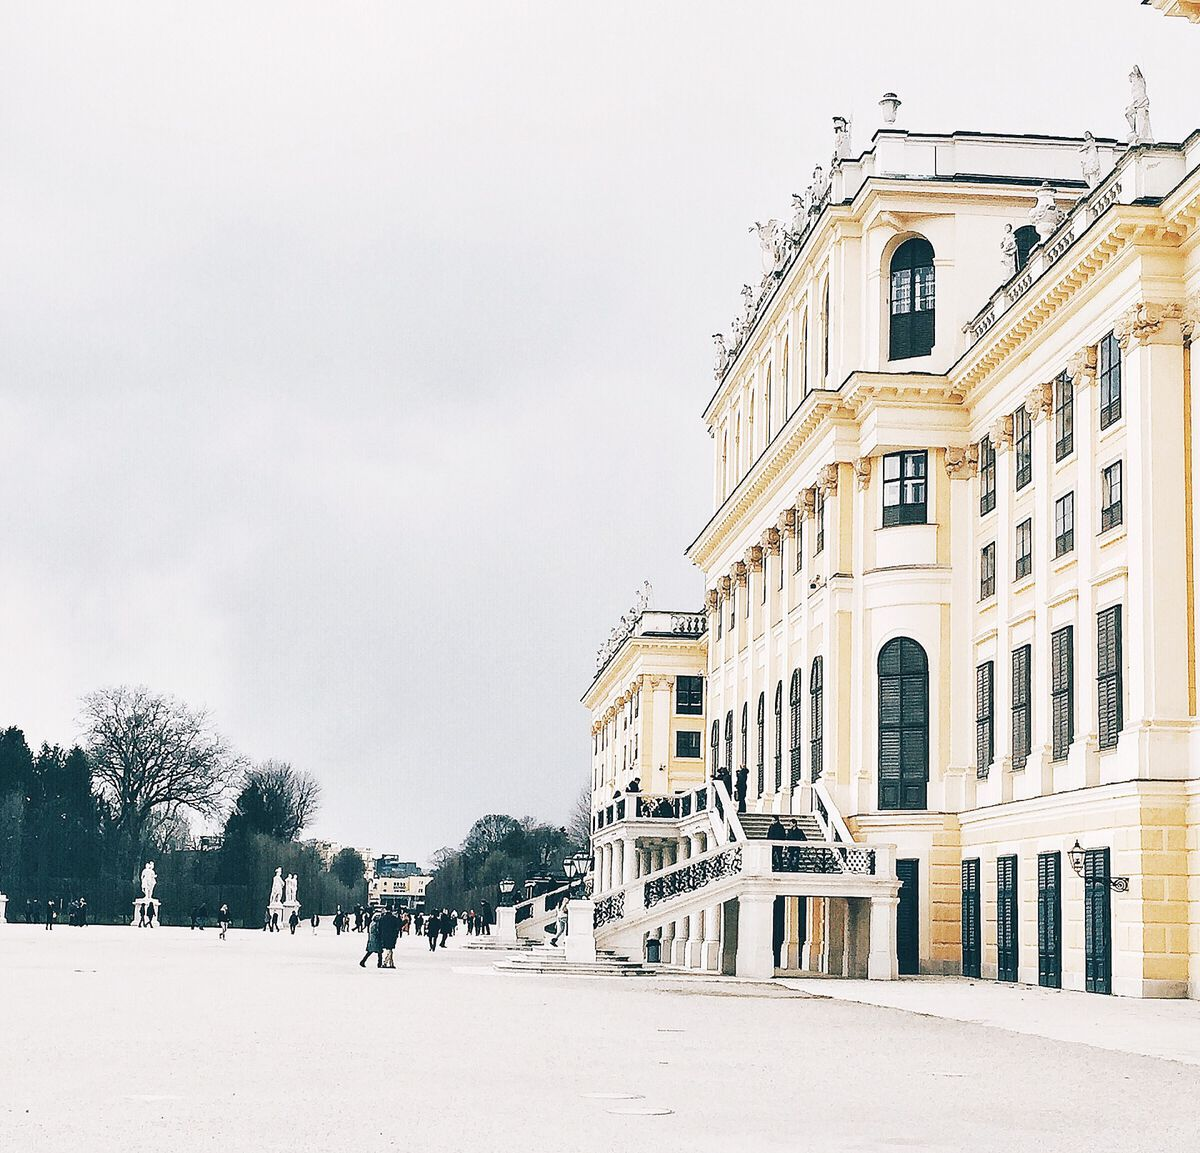 Schoenbrunn Castle Schloss Vienna Wien Austria travel blog